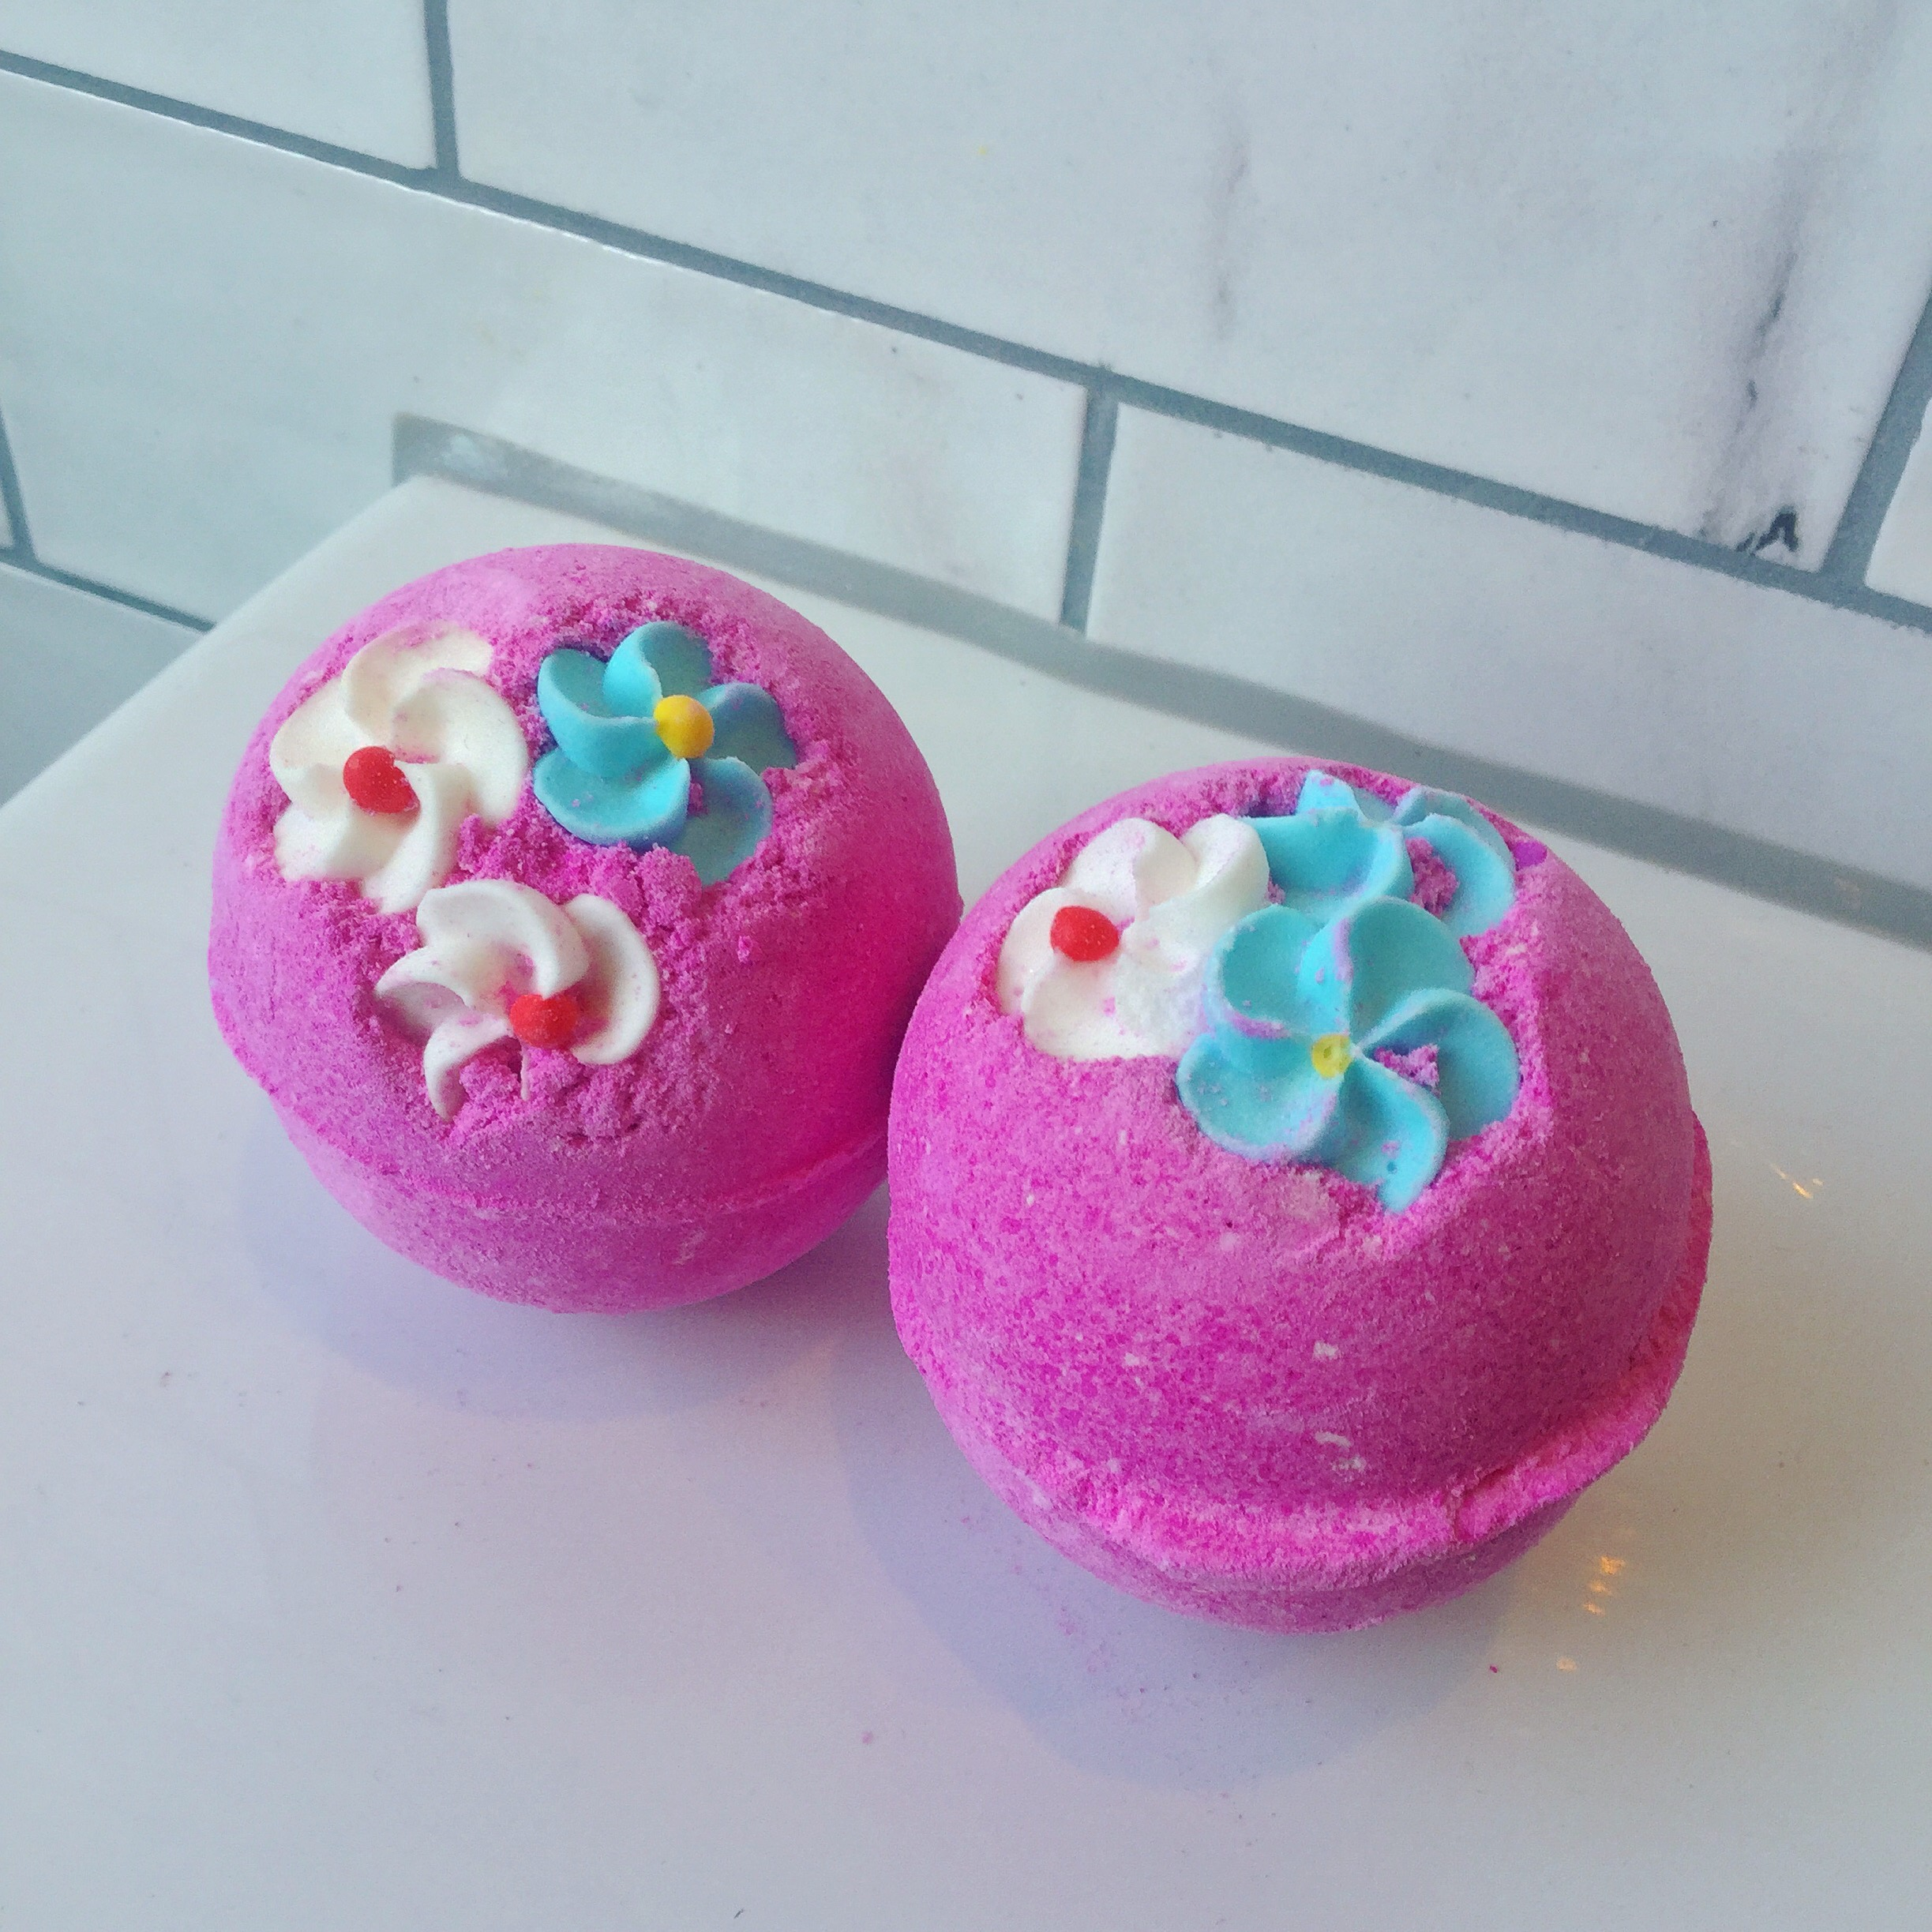 how to use a bath bomb from pink